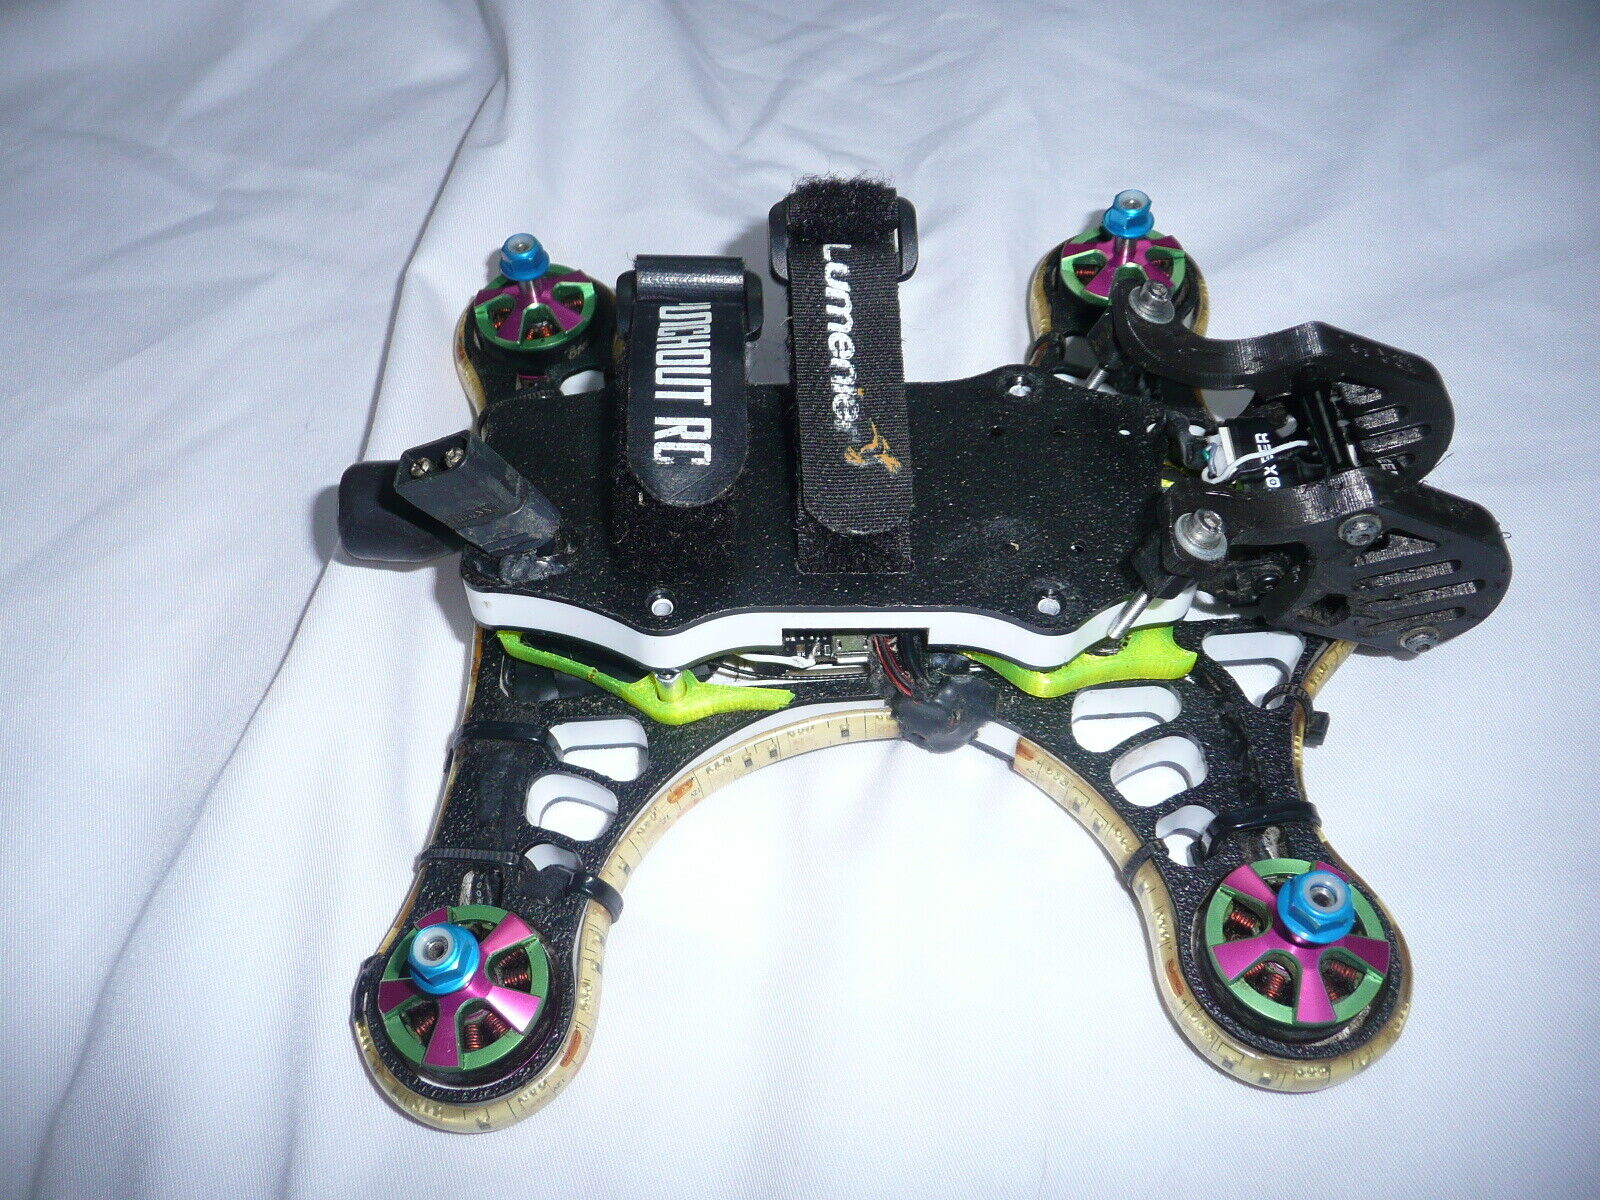 KISS FPV RACING DRONE WITH BROTHER HOBBY MOTORS AND TRAMP VTX